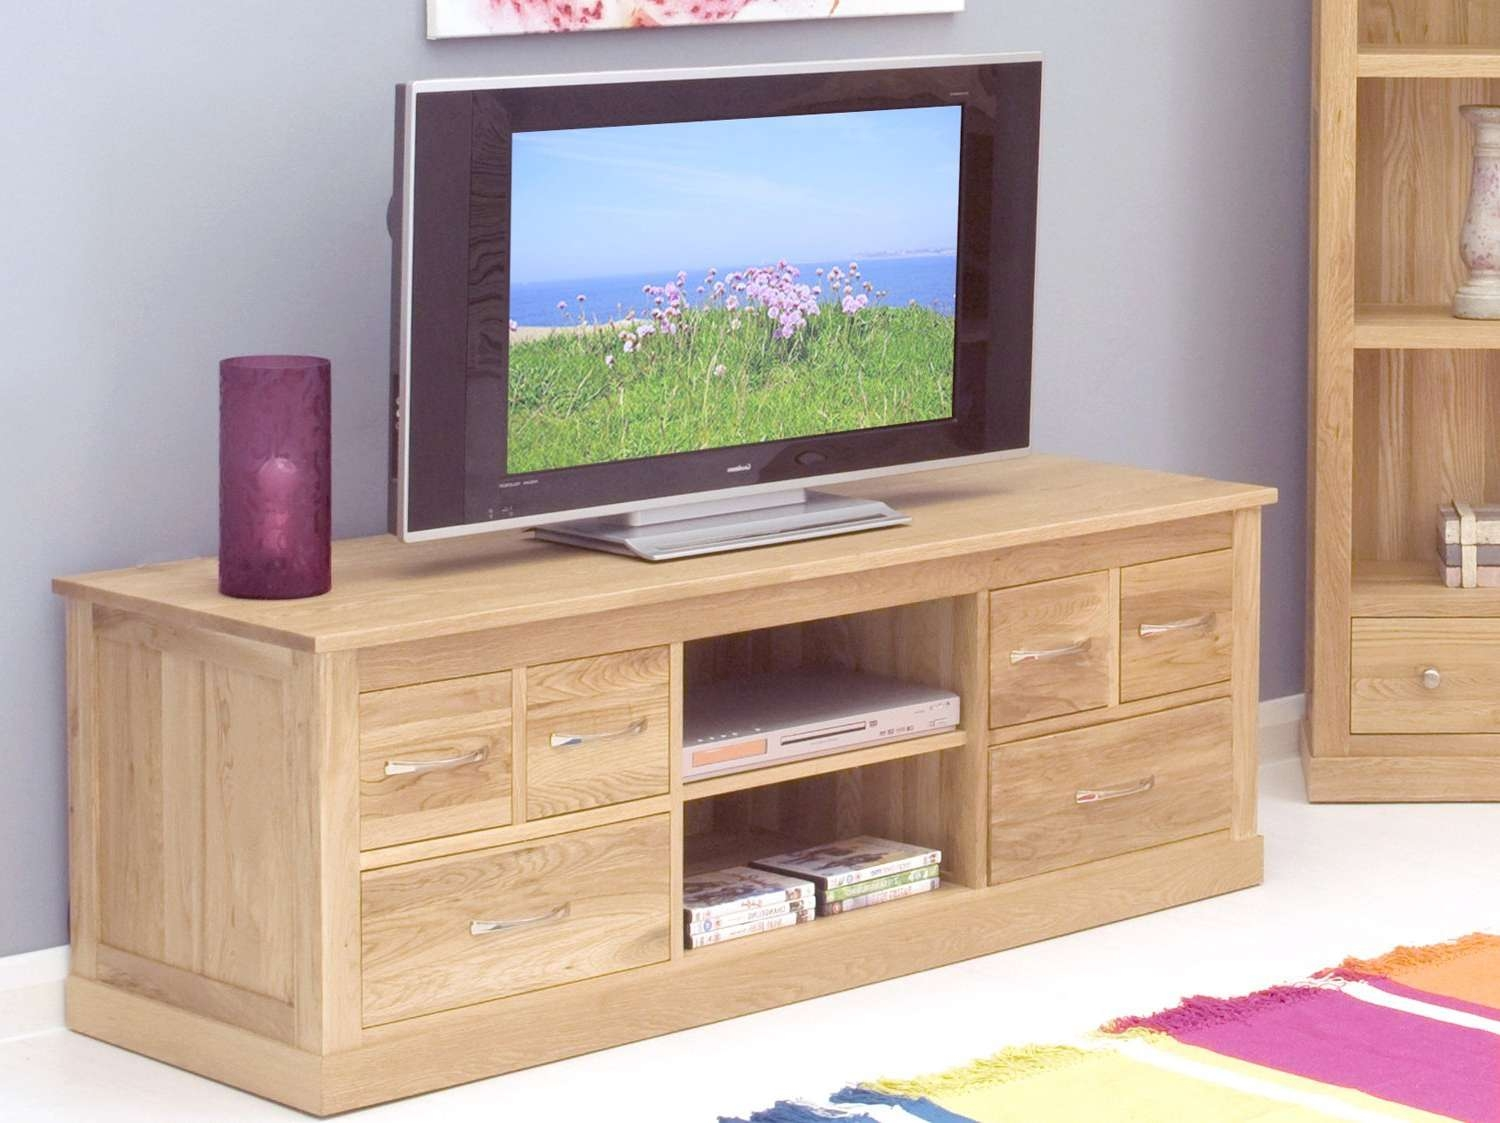 Honey Oak Tv Stand : Innovative Designs Oak Tv Console – Marku In Honey Oak Tv Stands (View 2 of 15)